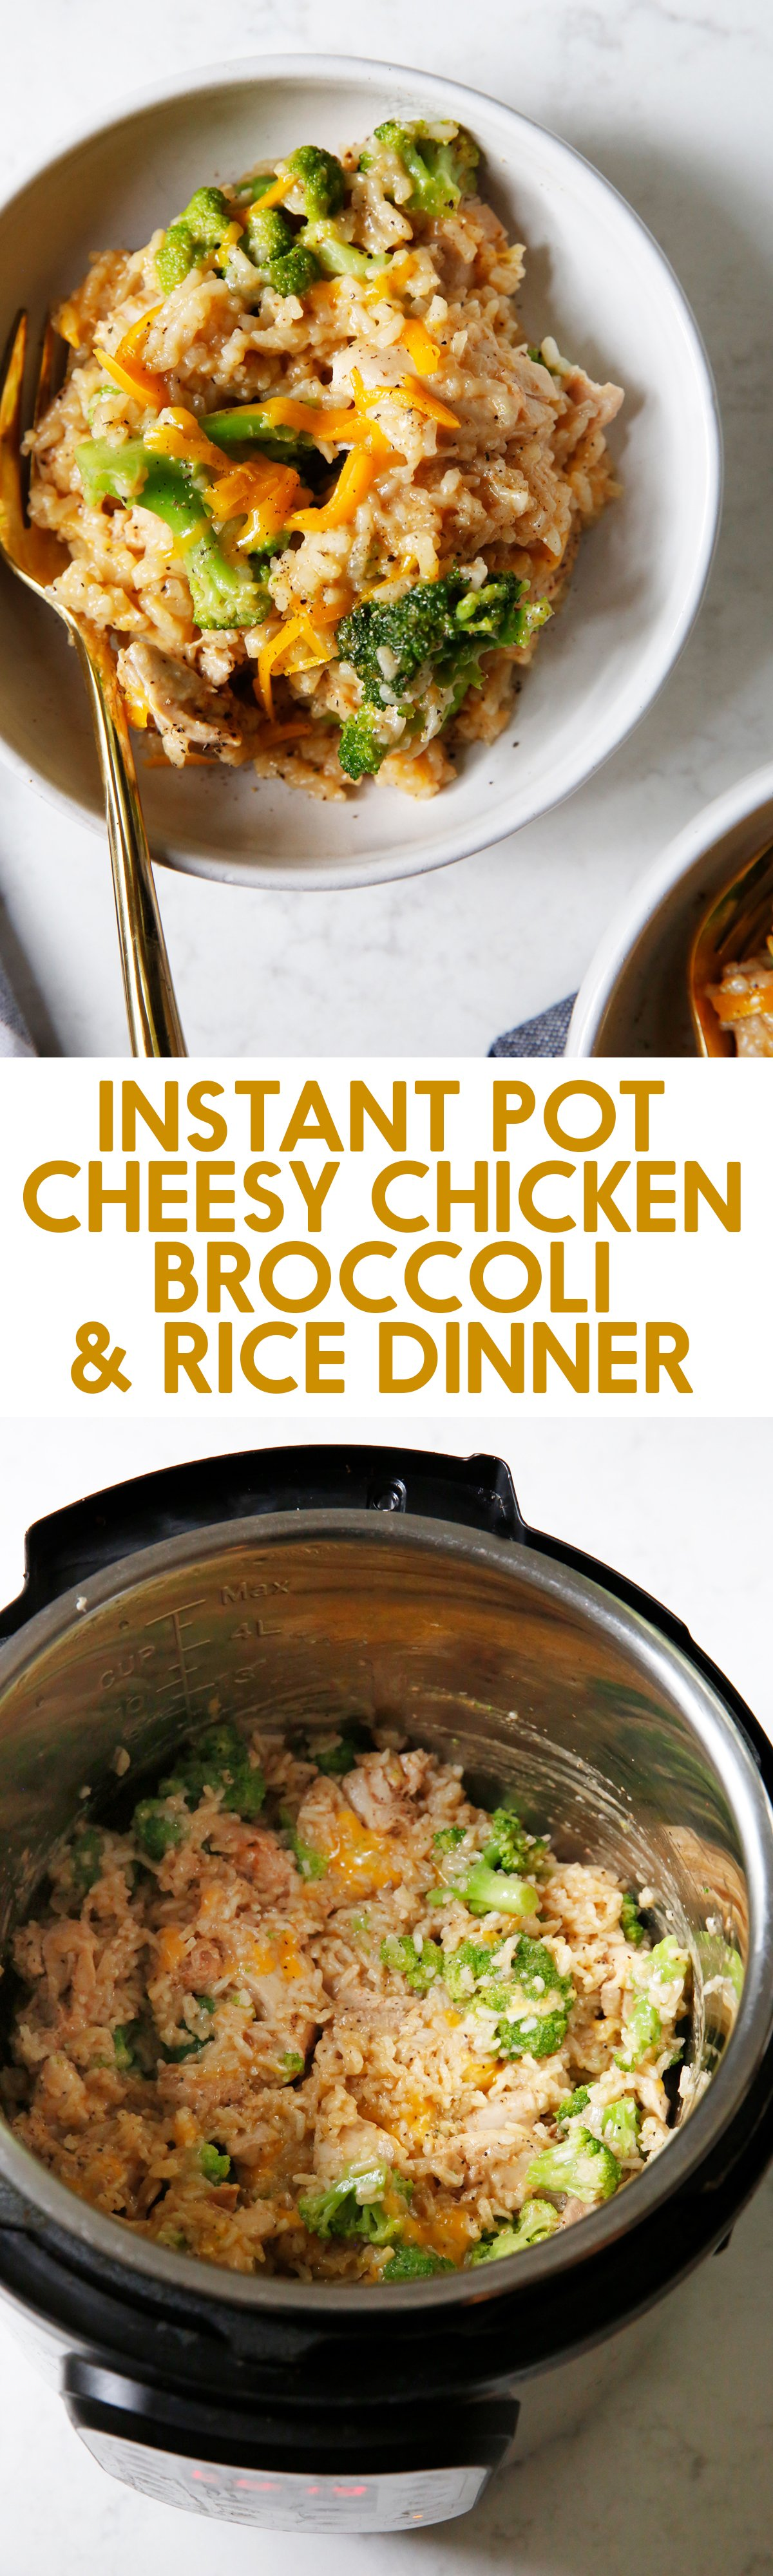 Instant Pot Cheesy Chicken Broccoli And Rice Lexi S Clean Kitchen